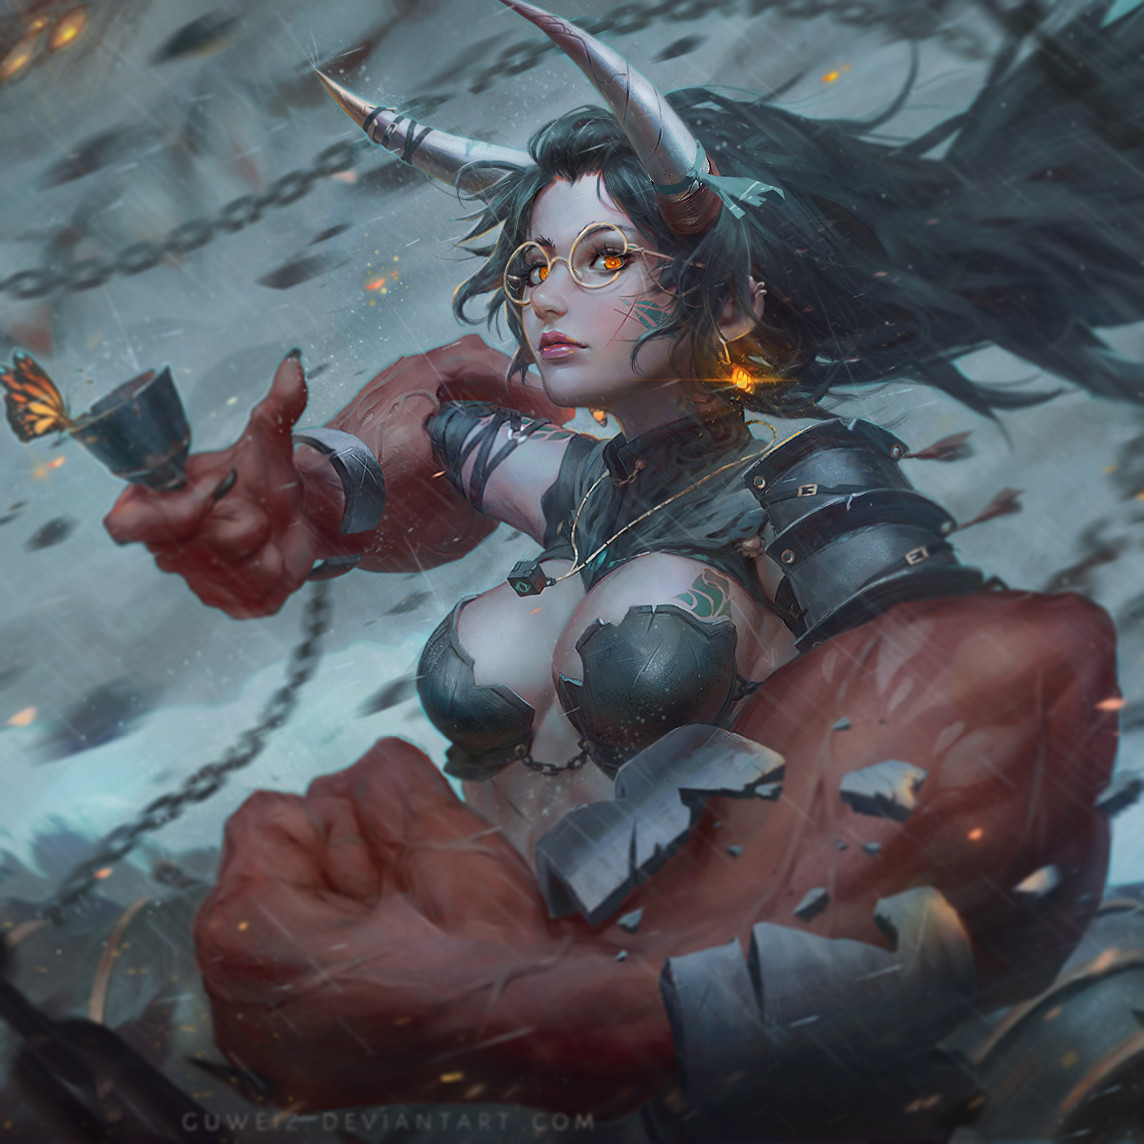 Horned girl with giant hand